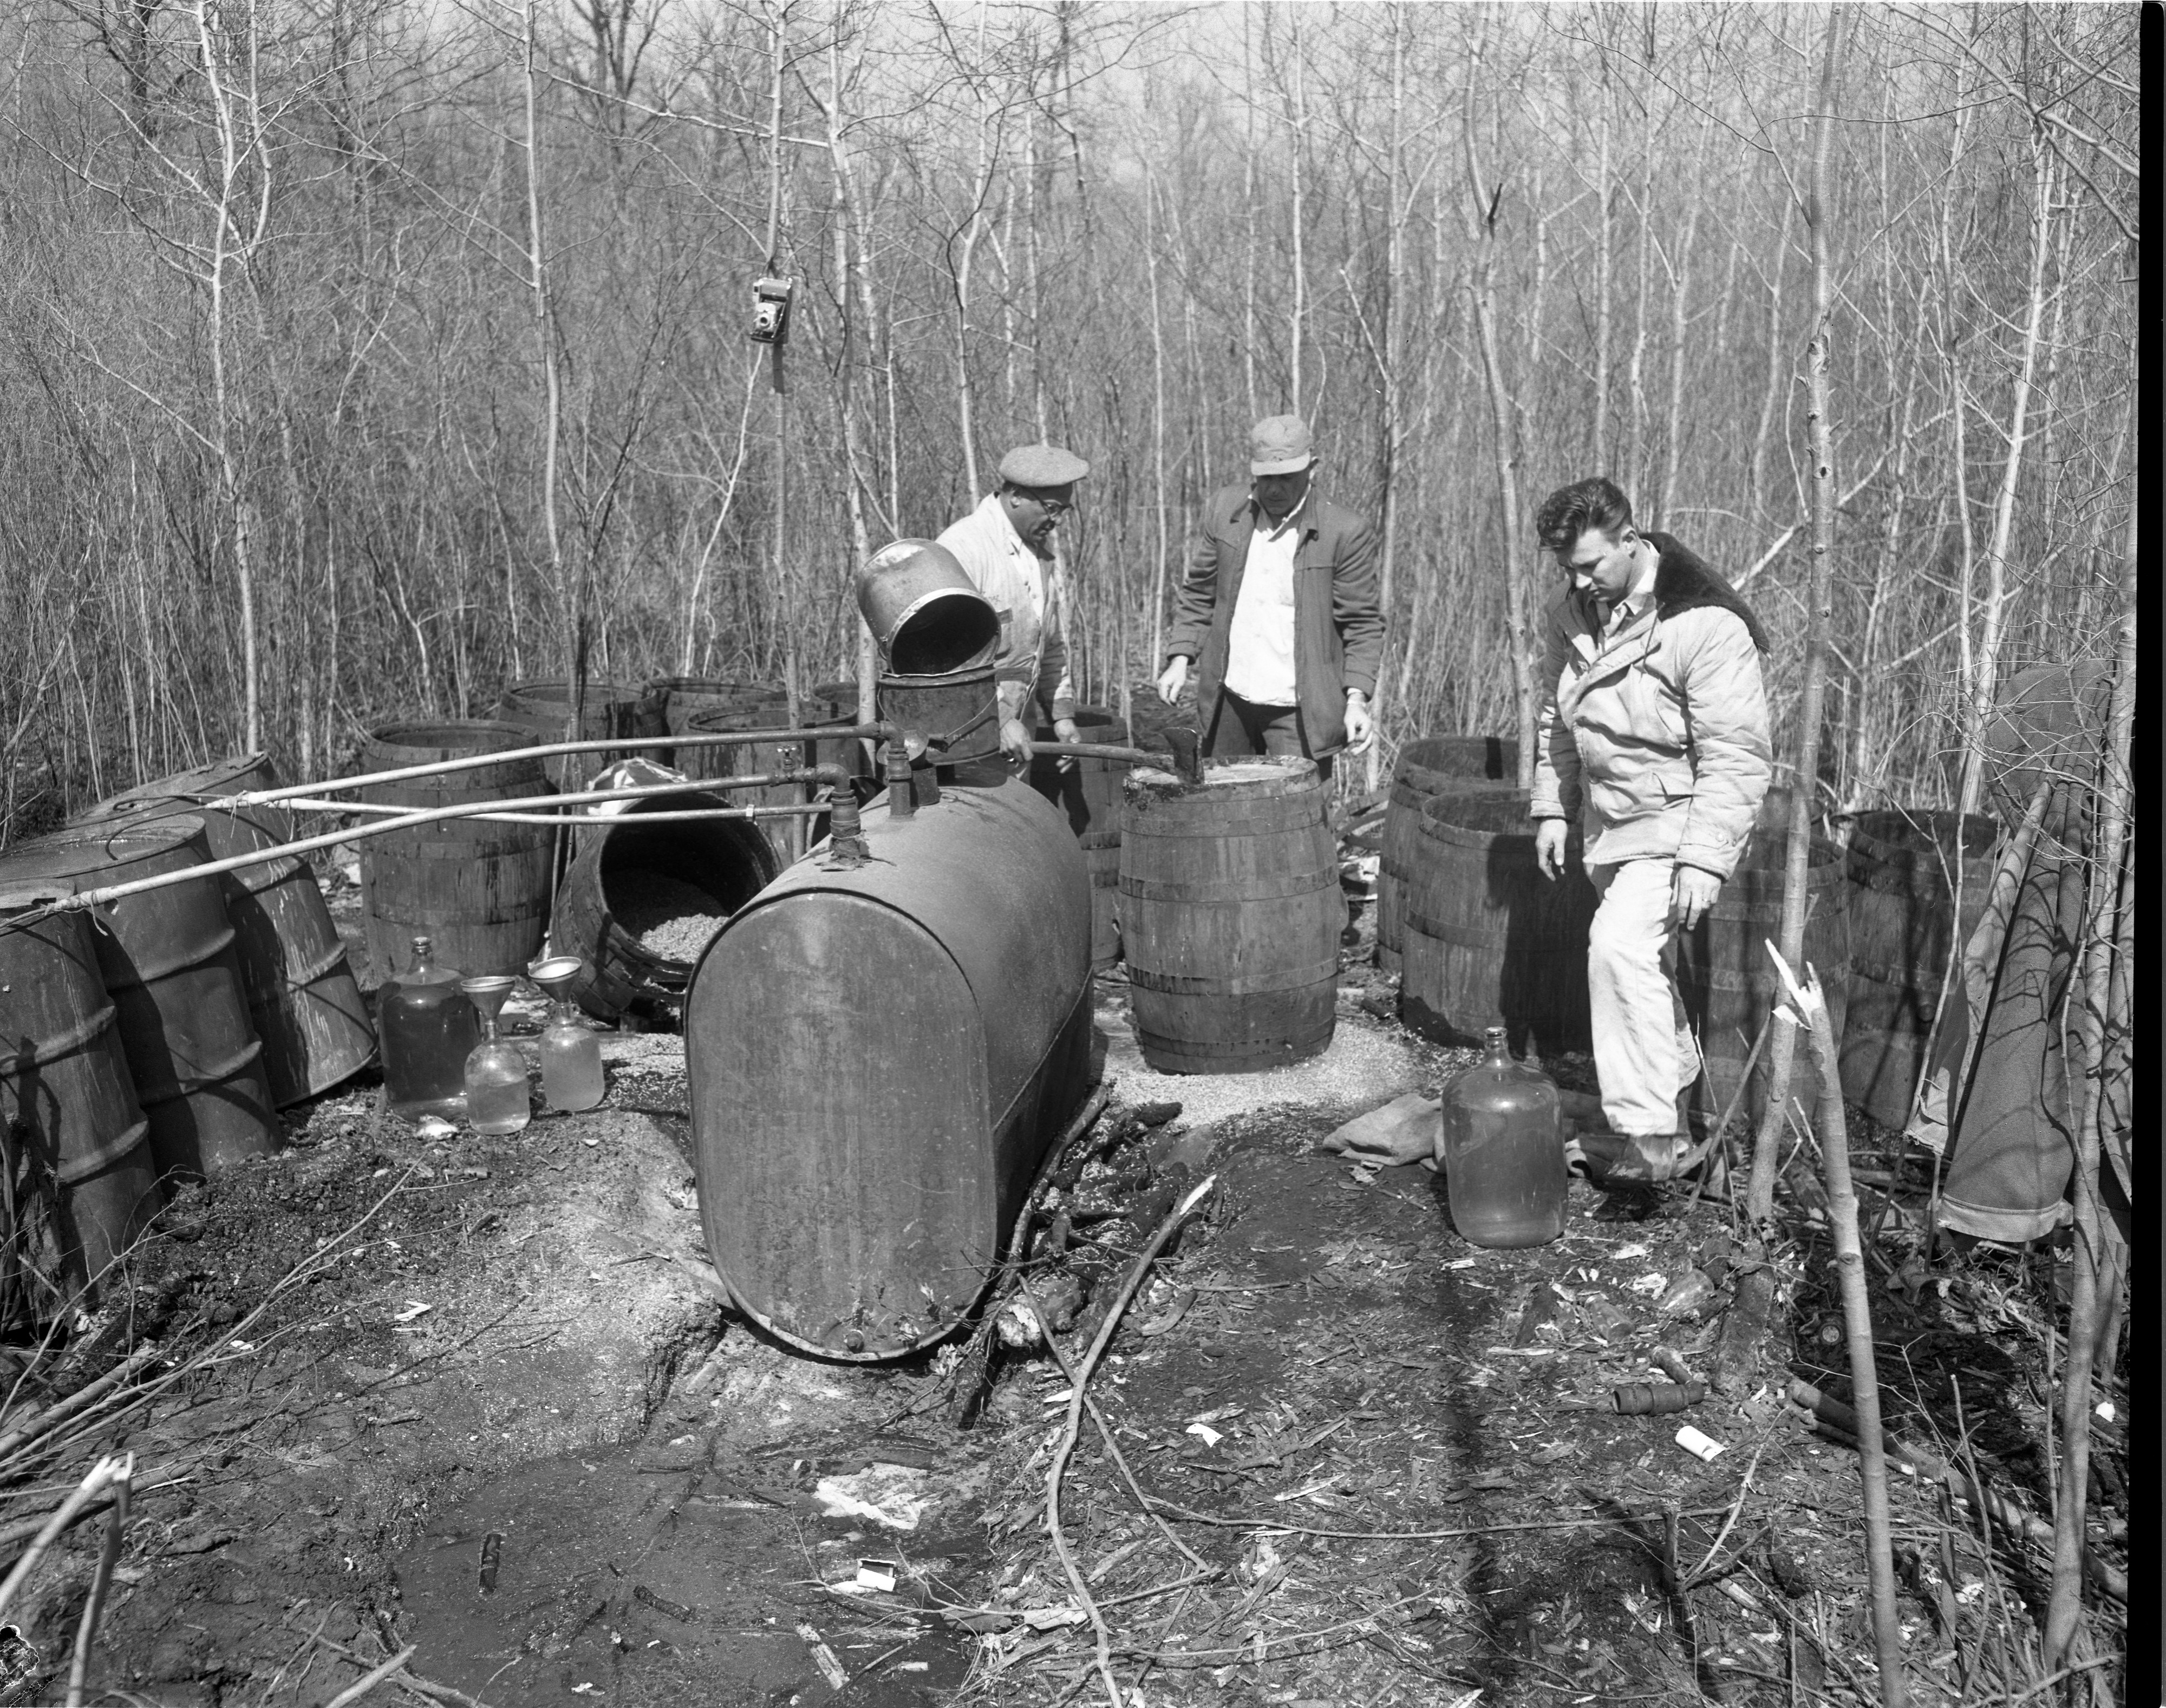 Michigan State Police Destroy Moonshine Still Found In Sumpter Township, March 30, 1959 image